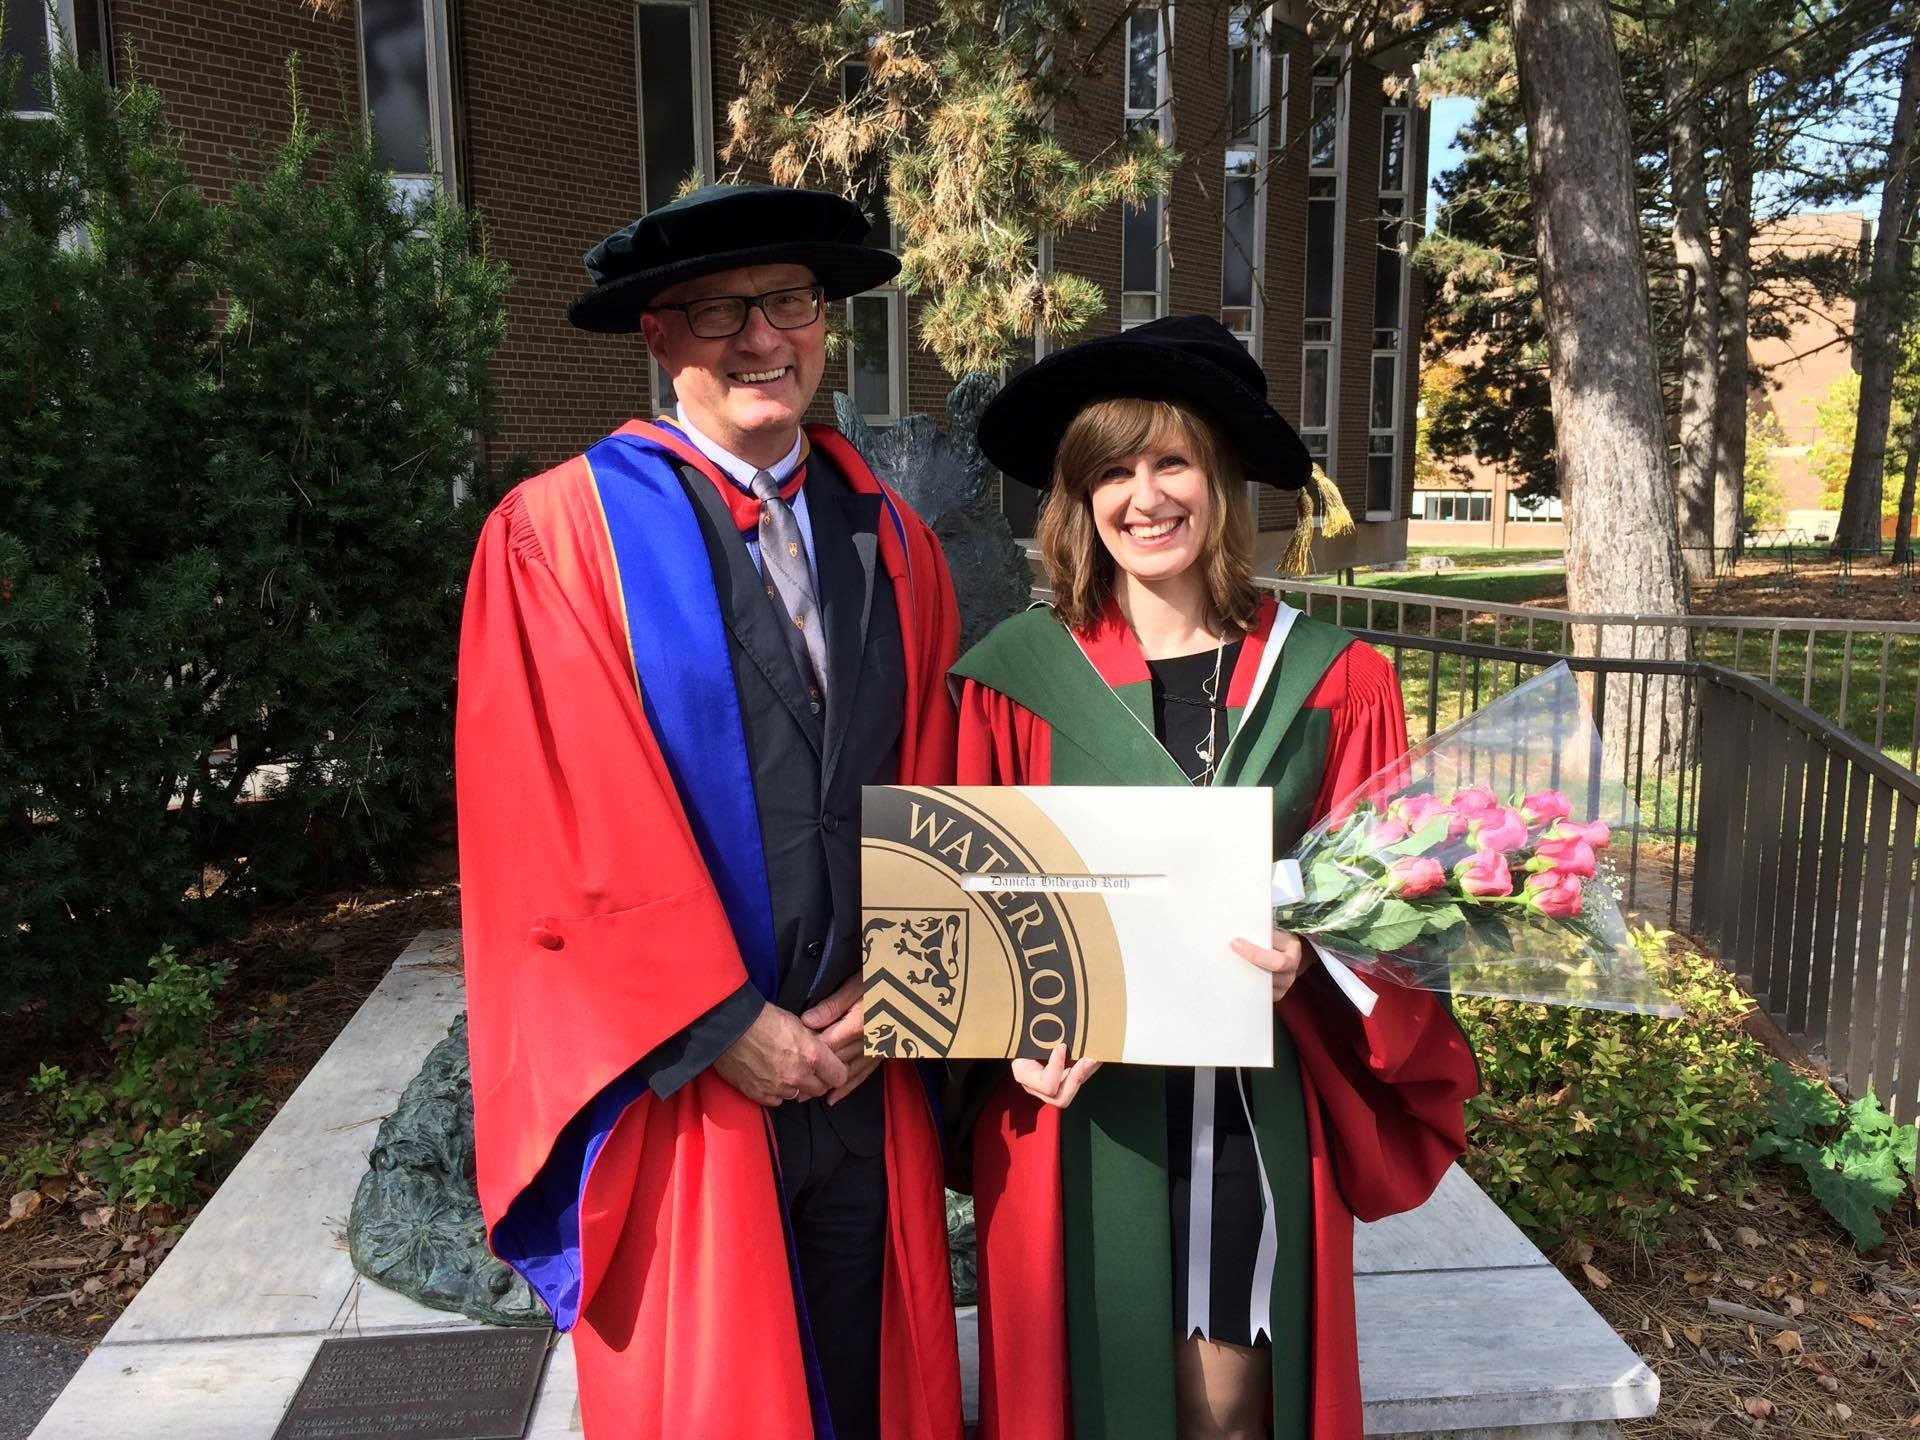 GSS Prof. Michael Boehringer and Dr. Daniela Roth at convocation